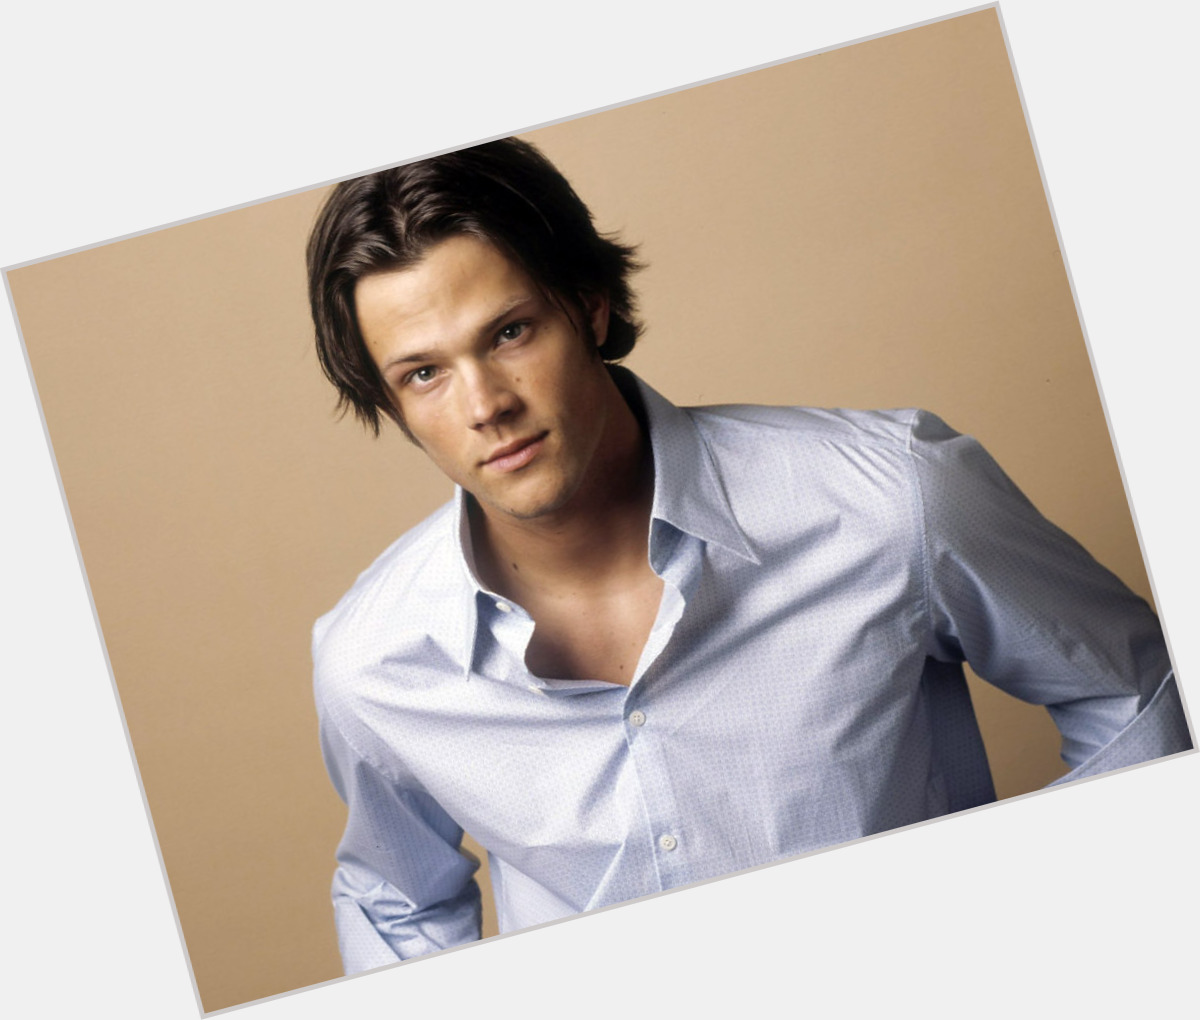 Jared Padalecki celebrity 1.jpg